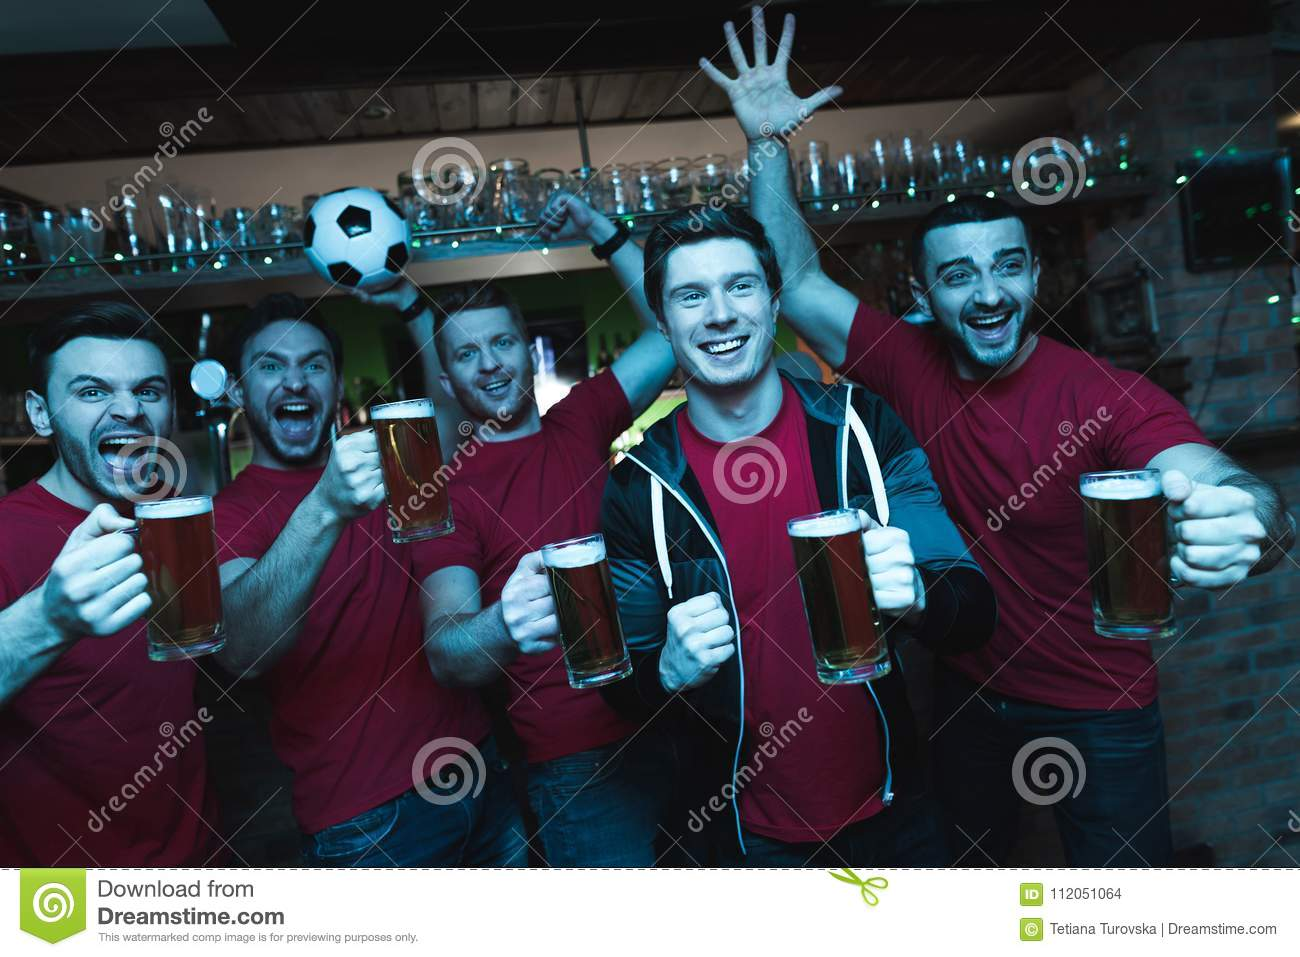 Sports fans celebrating and cheering in front of tv drinking beer at sports bar.